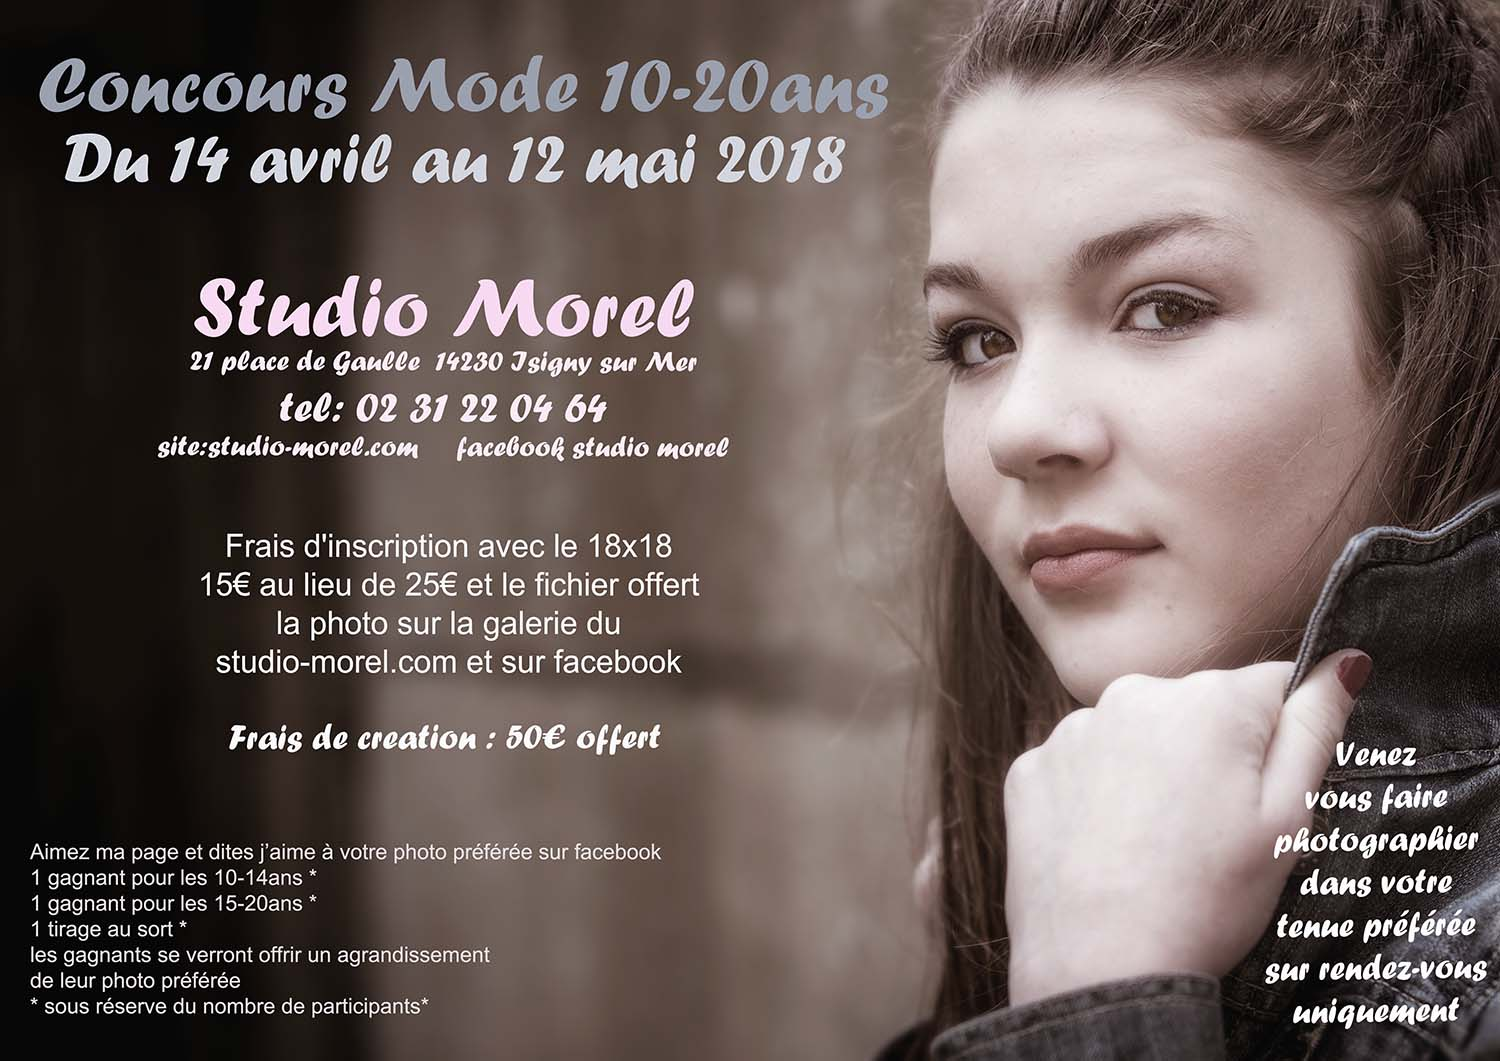 Concours mode 10 - 20ans